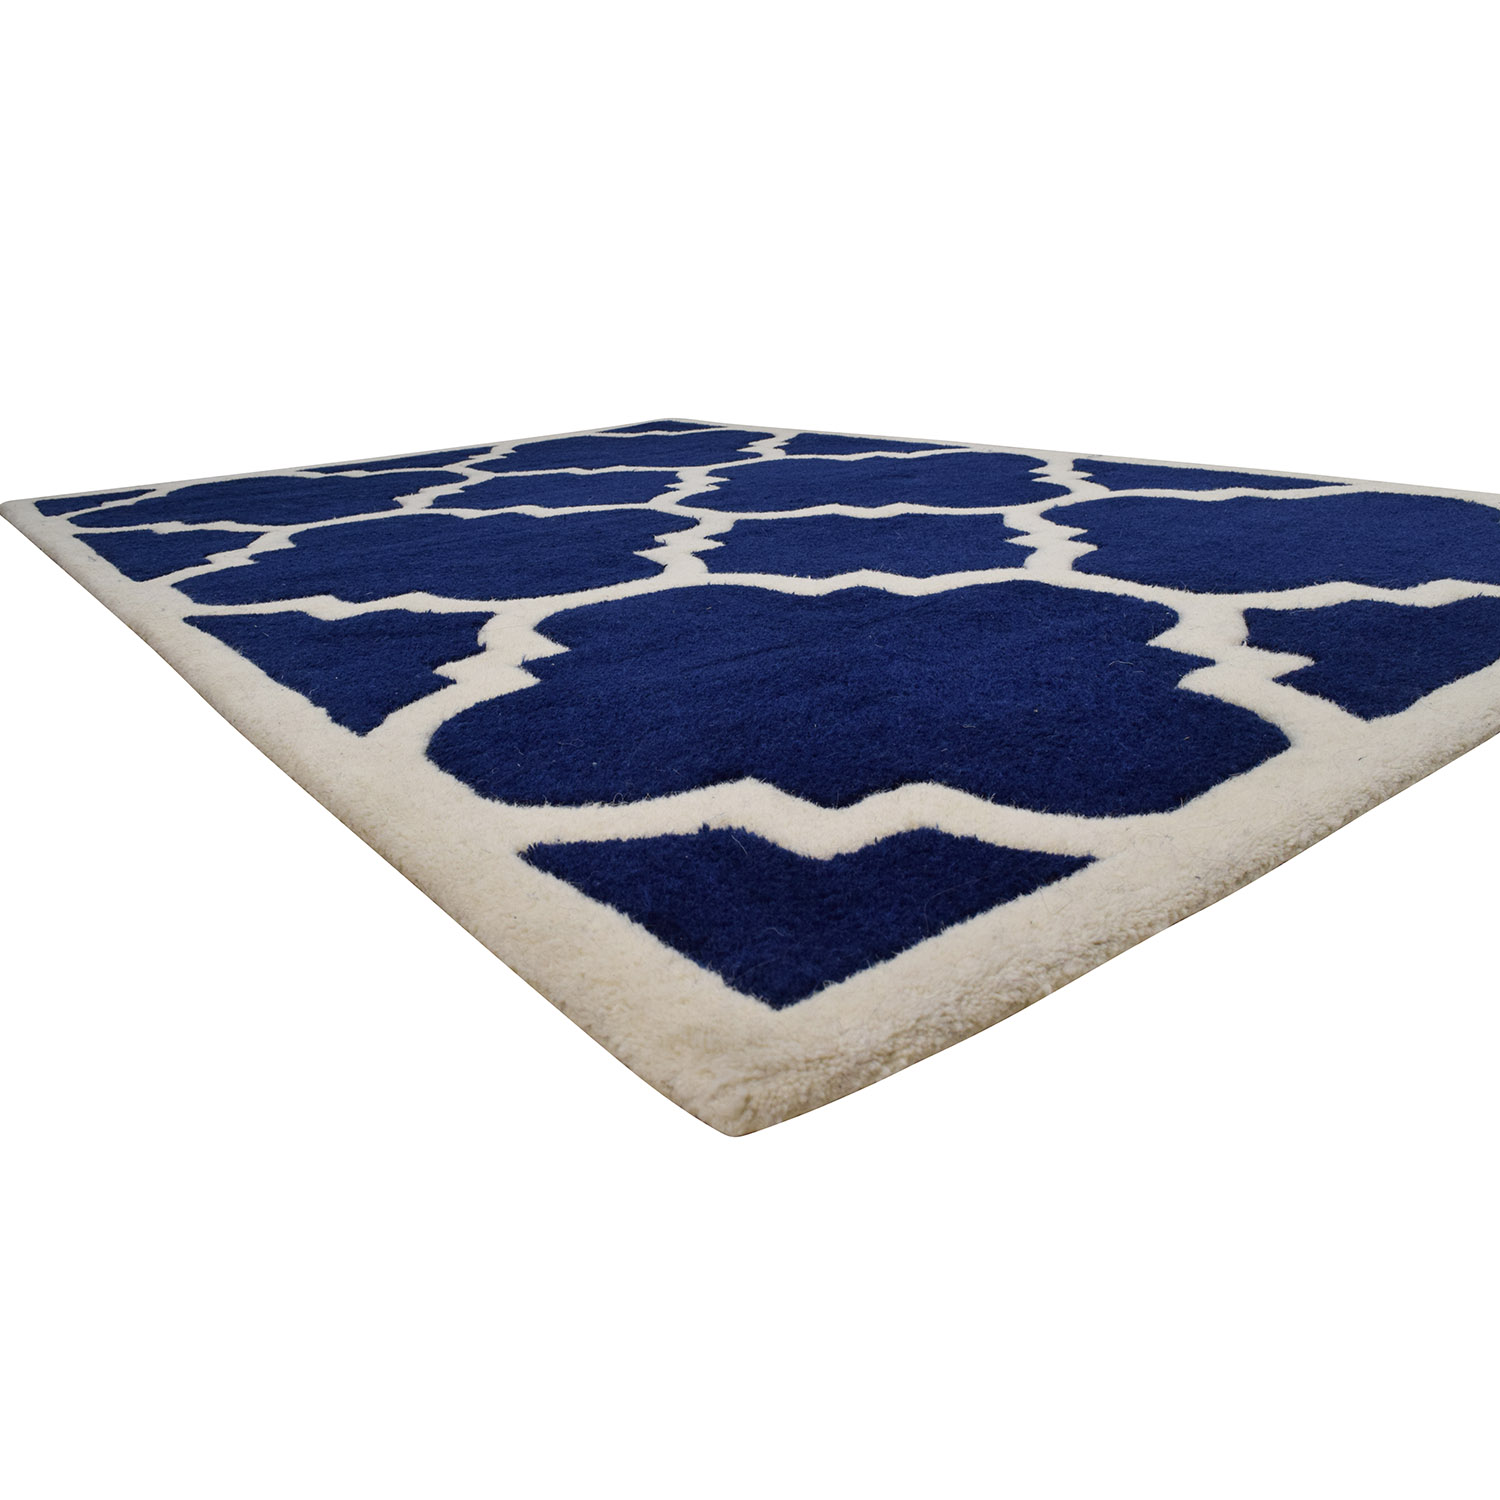 Safavieh Safavieh Moroccan Cambridge Navy Ivory Rug nyc